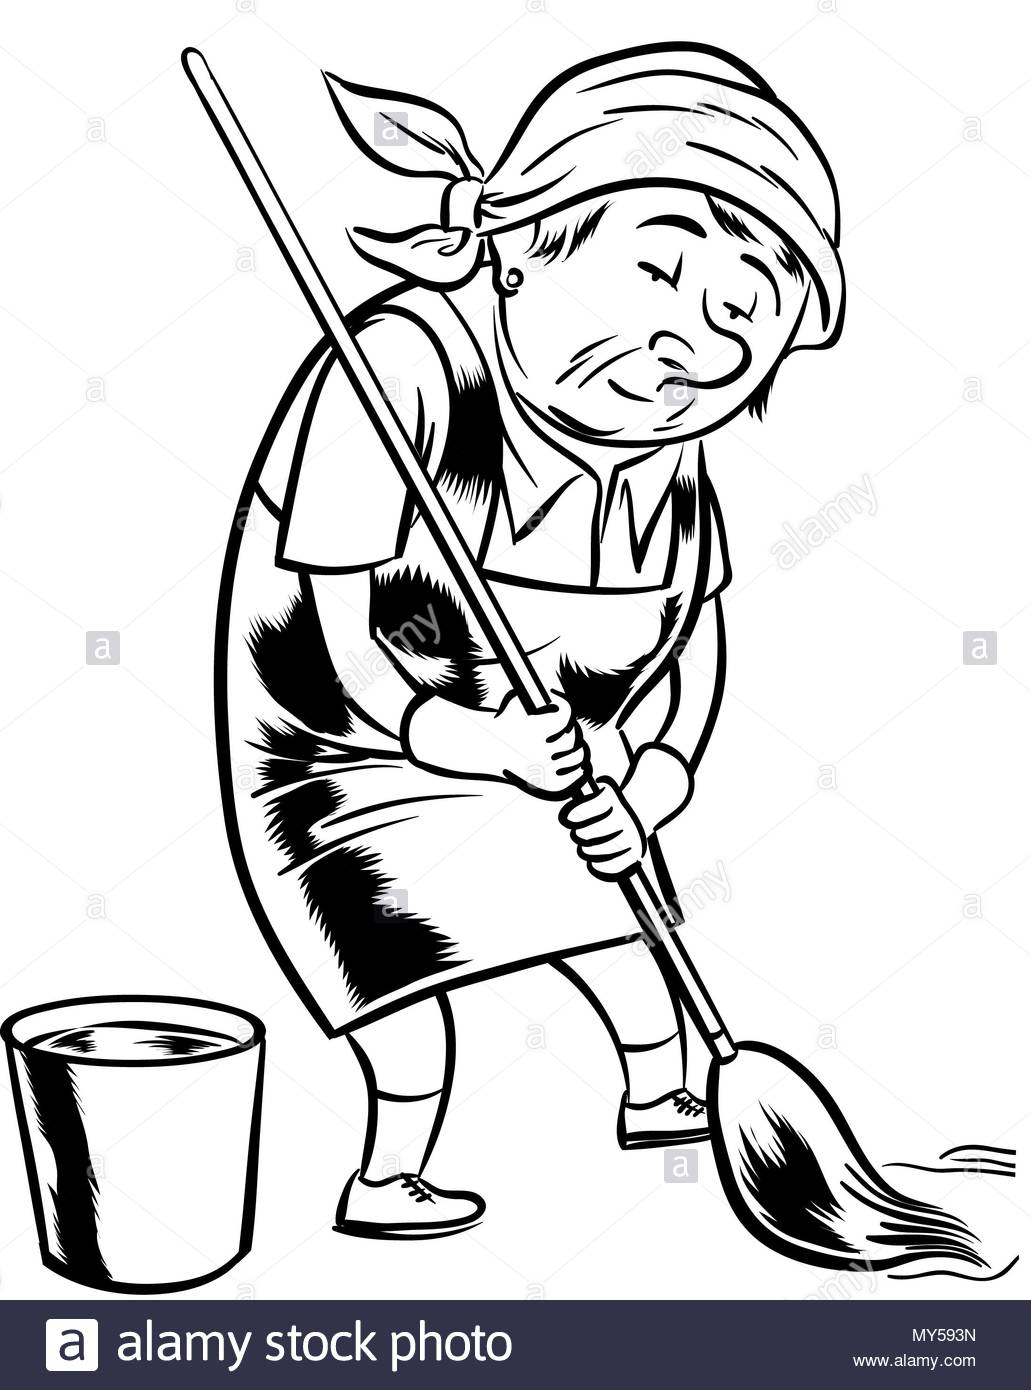 Cleaning Lady Black And White Stock Photos Images